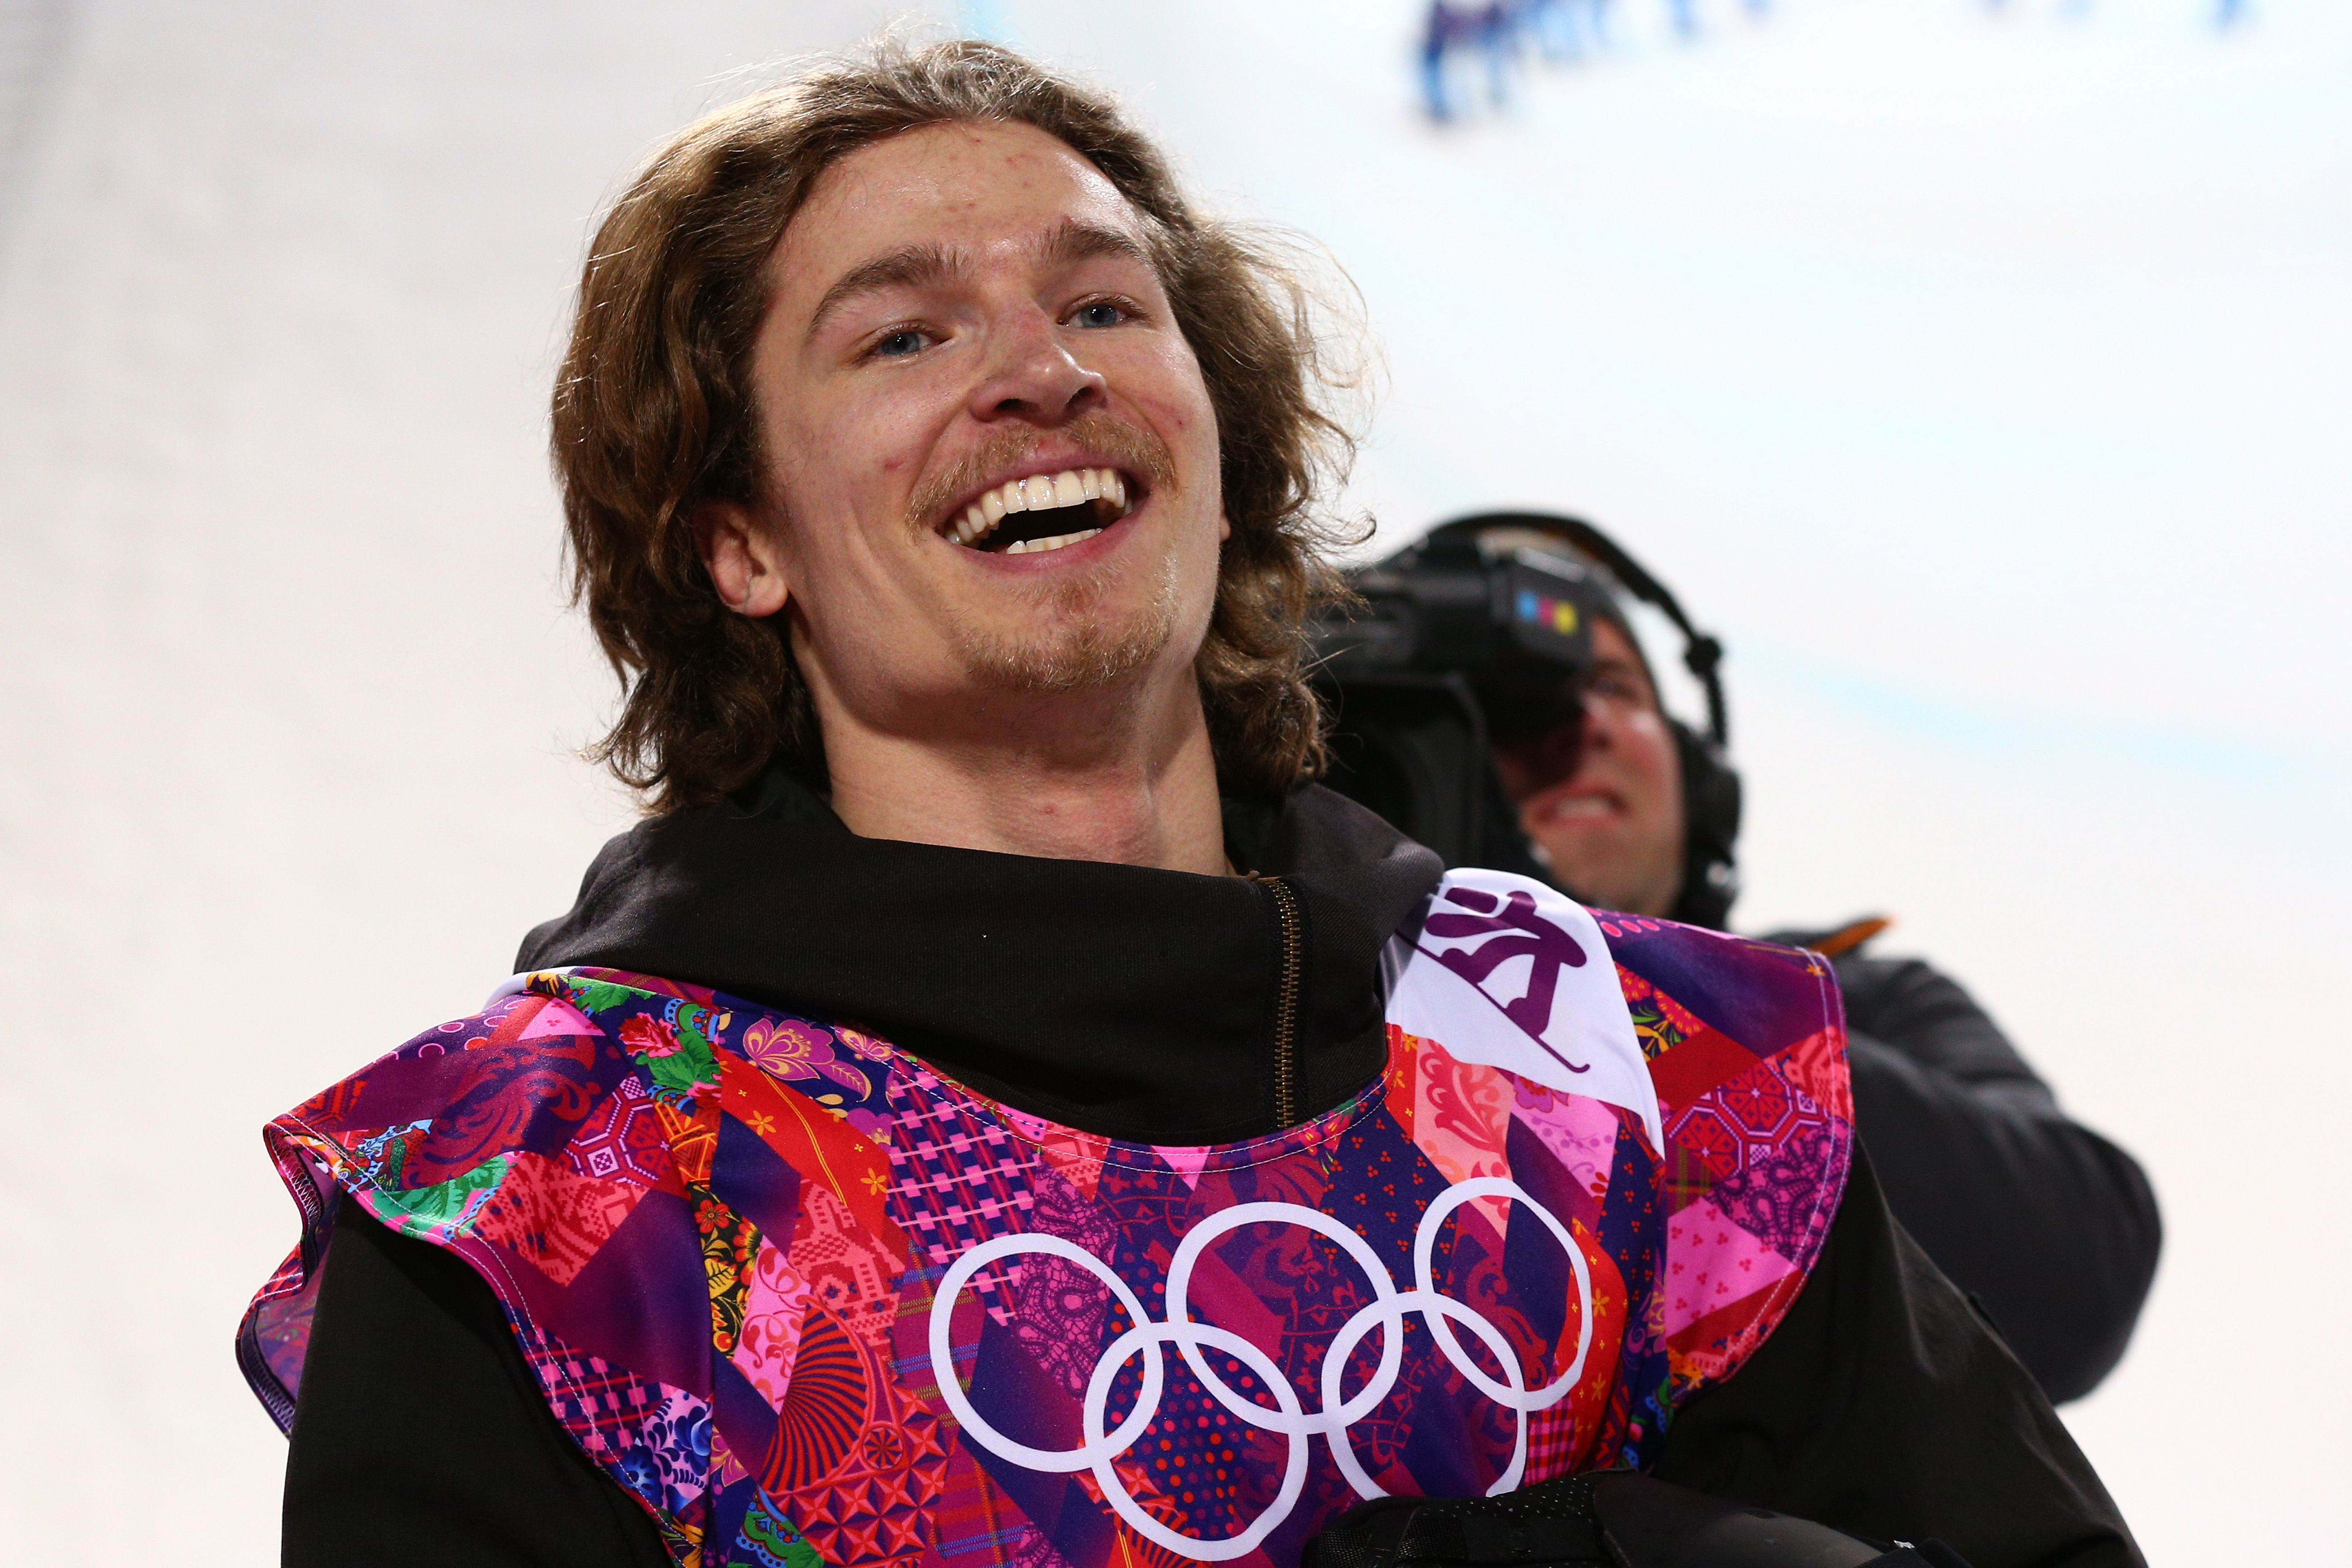 Iouri Podladtchikov of Switzerland celebrates after competing in the Snowboard Men's Halfpipe Finals on day four of the Sochi 2014 Winter Olympics at Rosa Khutor Extreme Park on February 11, 2014 in Sochi, Russia. Cameron Spencer/Getty Images)